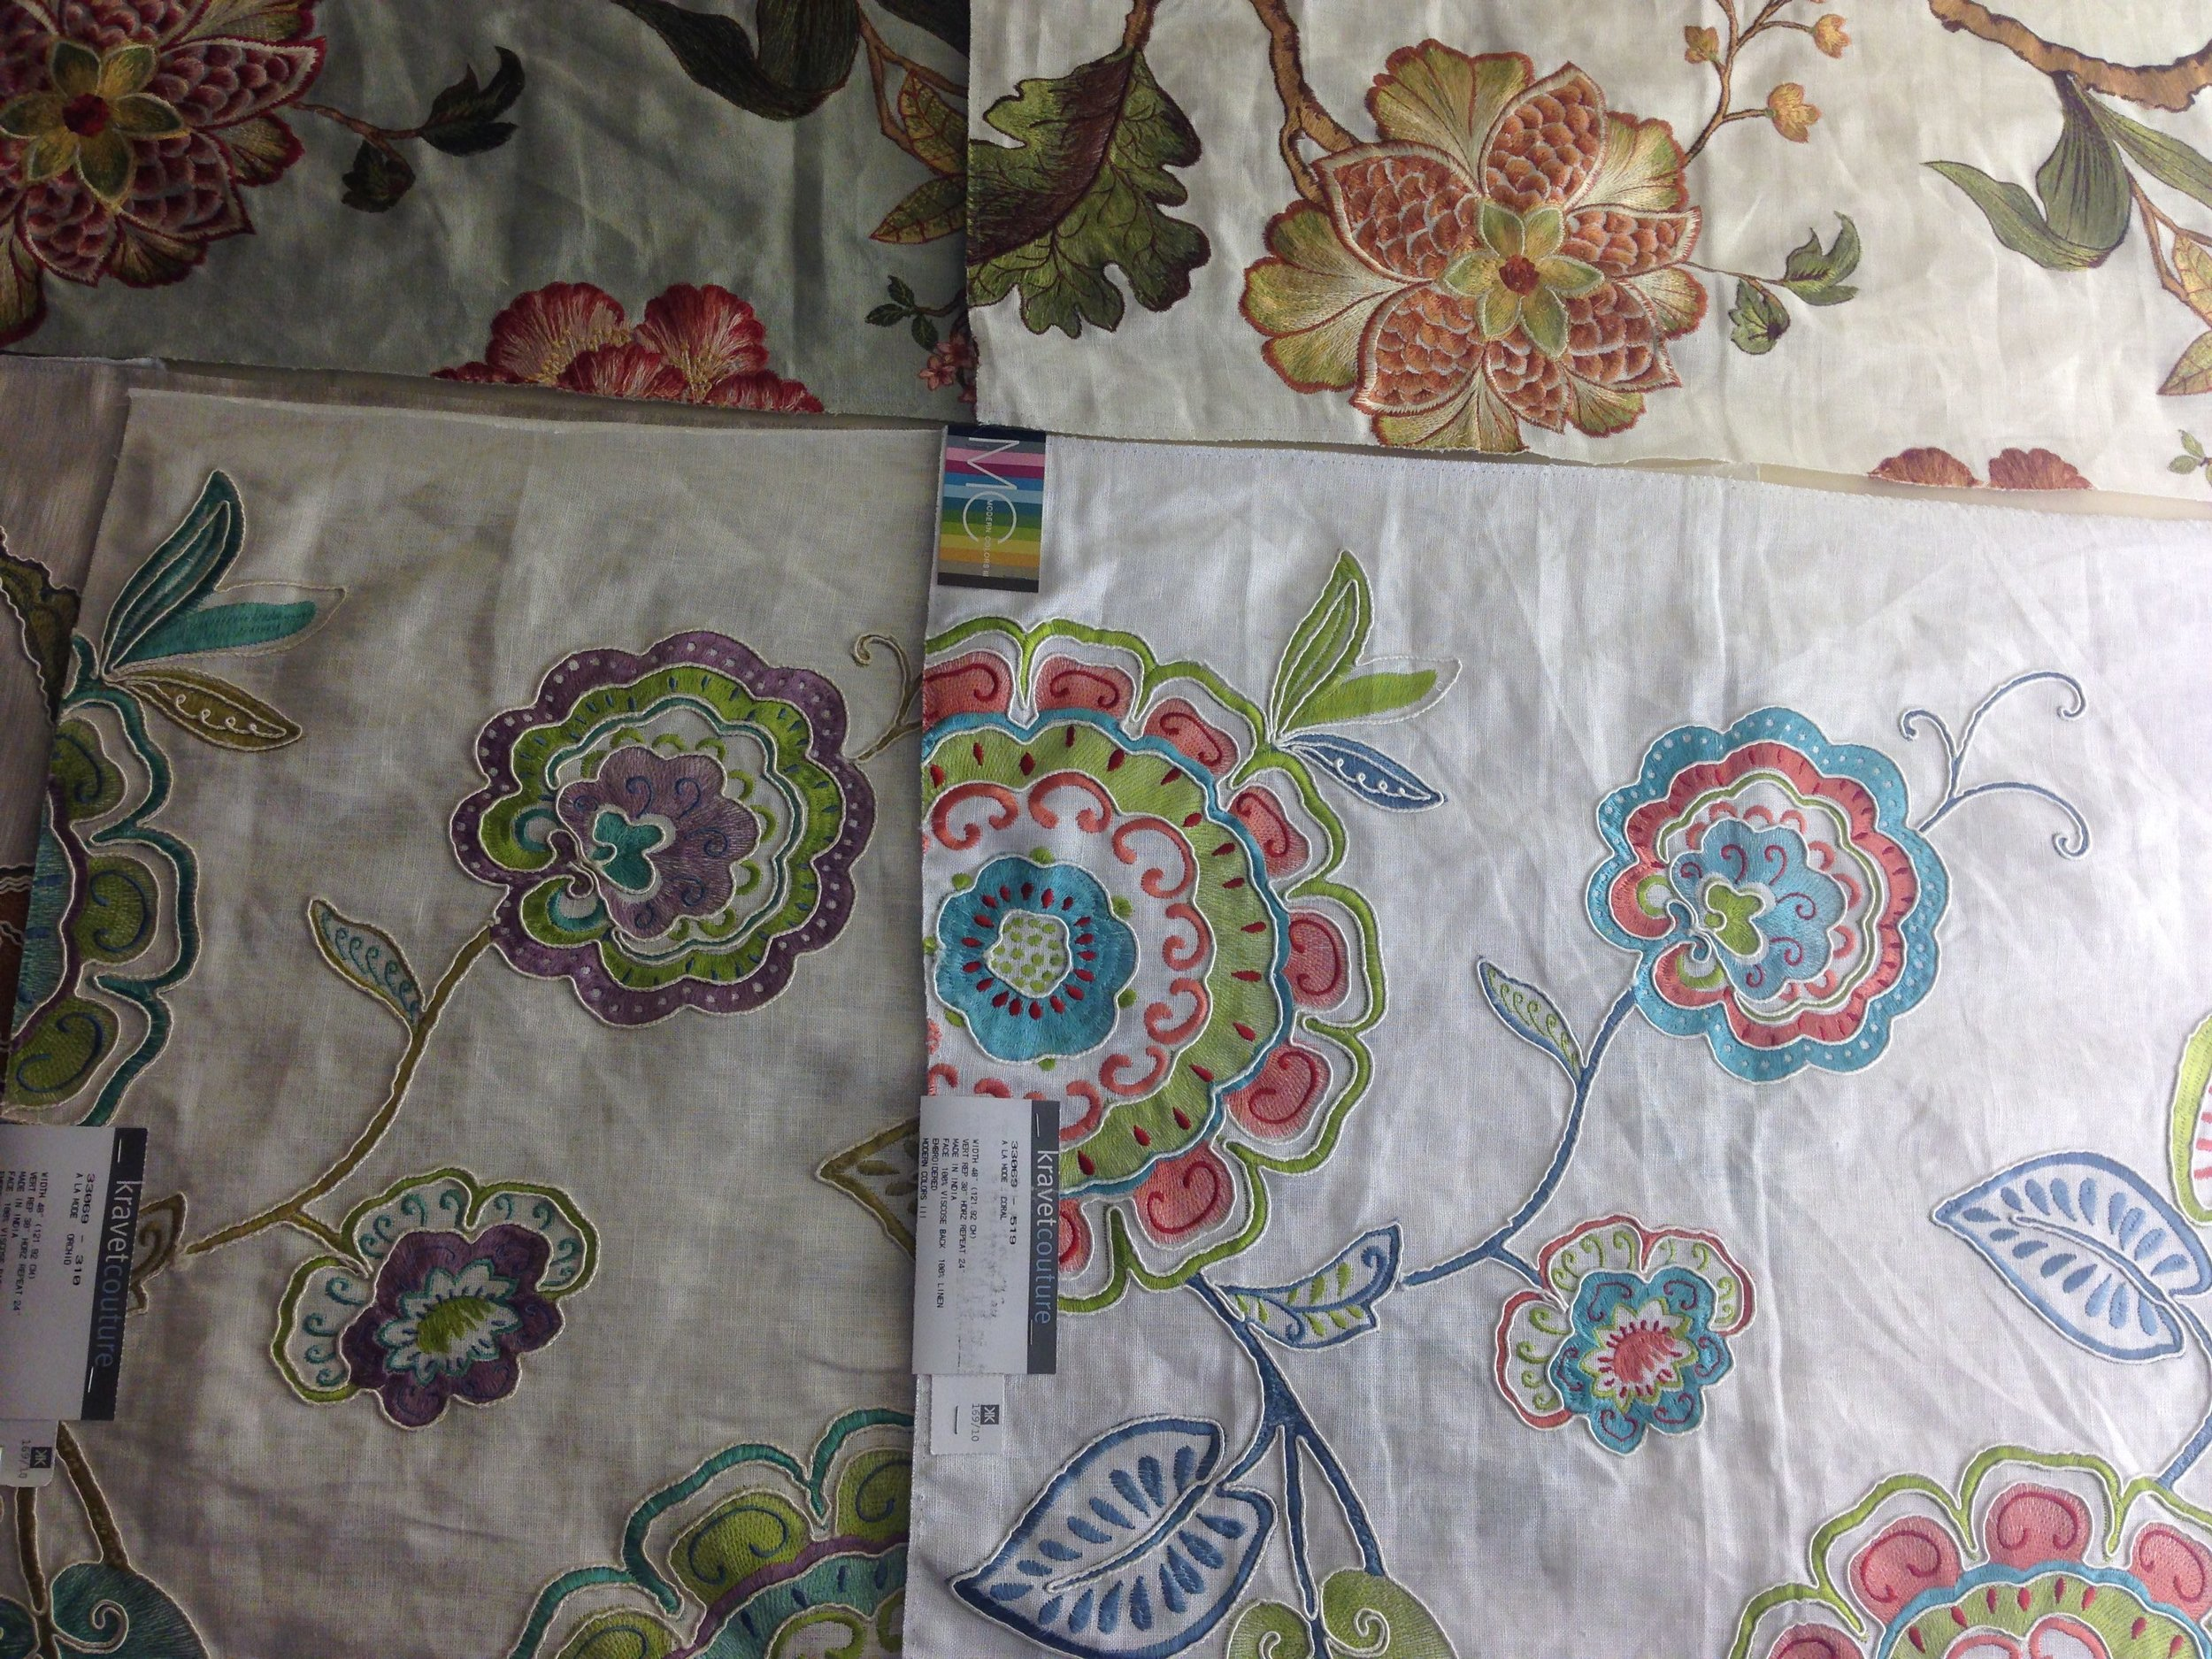 more colorful embroidered linen fabric